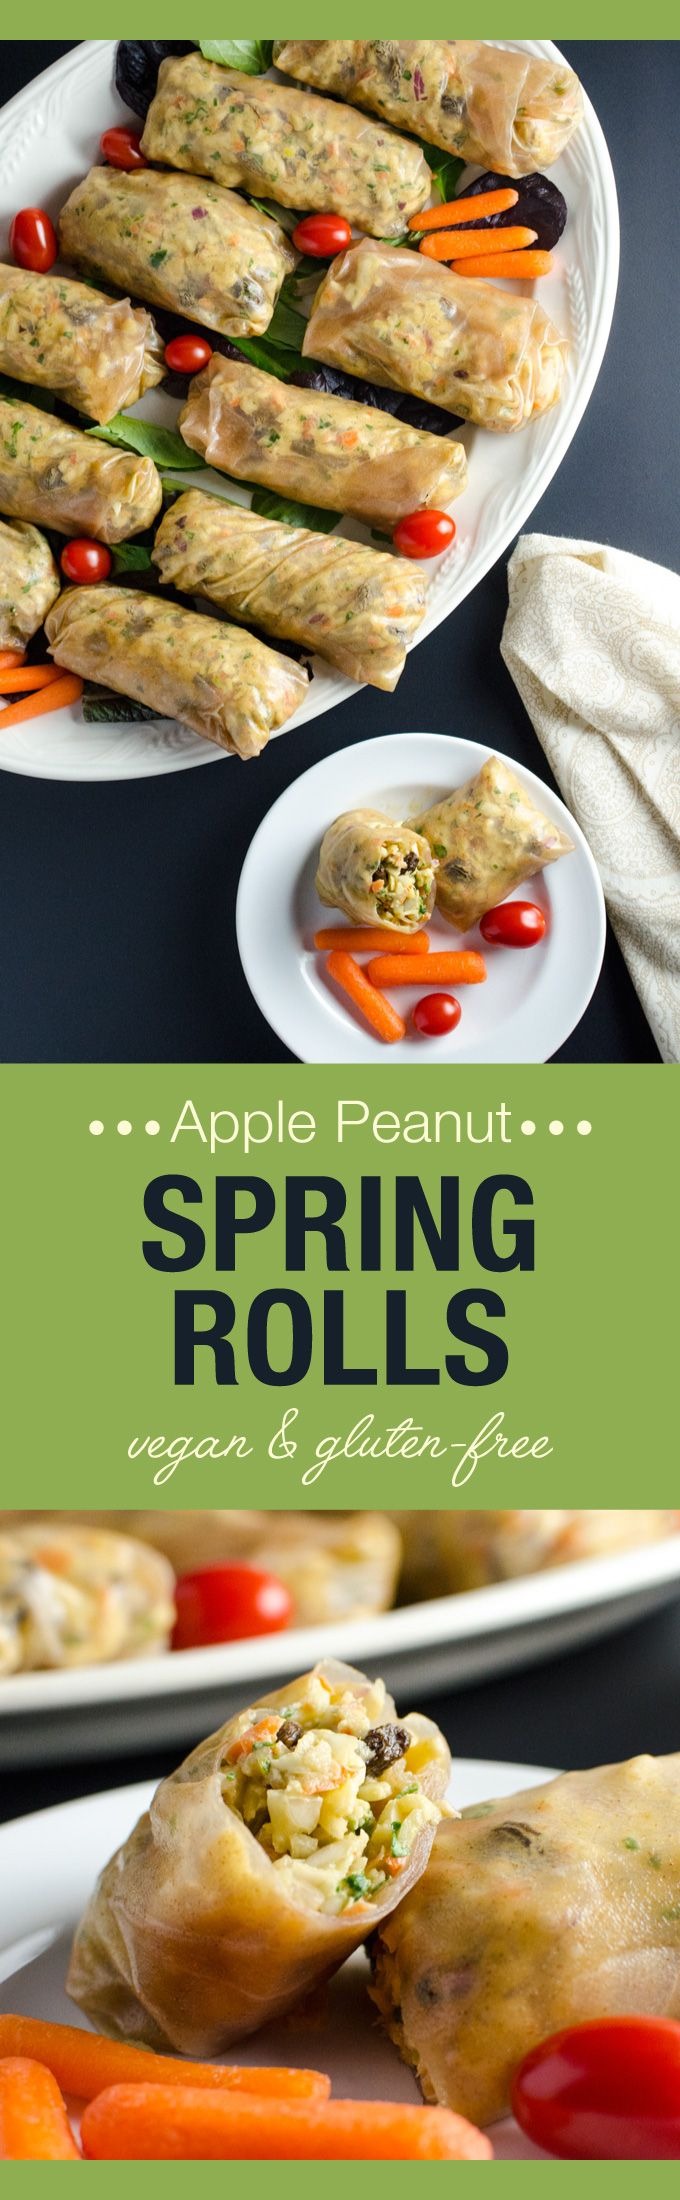 171 best vegan hors party foods images on pinterest vegetarian apple peanut spring rolls this easy raw vegan and glutenfree recipe offers a lovely blend of textures and sweet spicy flavors forumfinder Choice Image